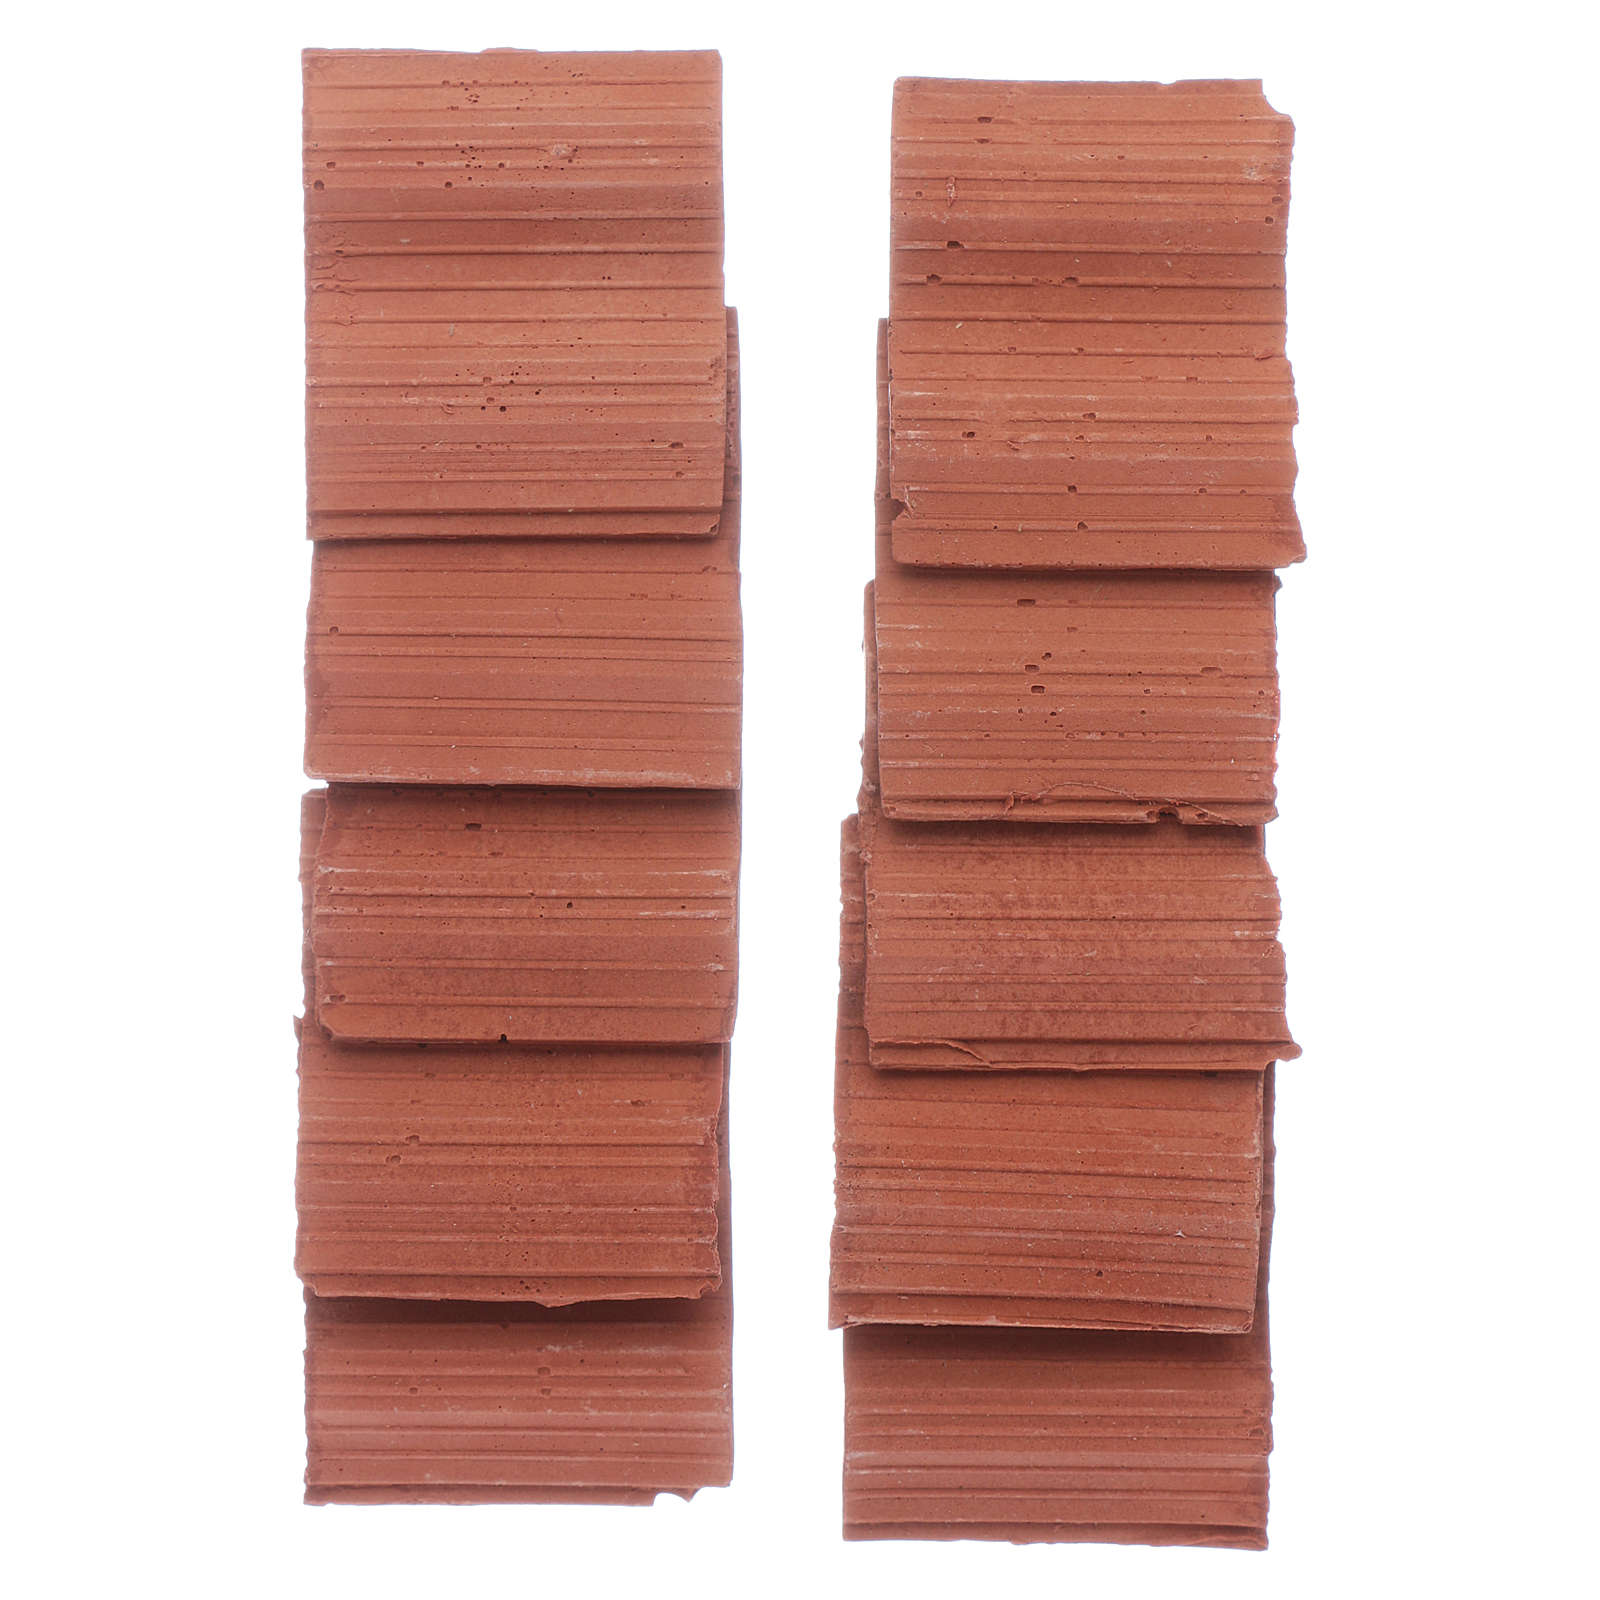 Double wave shingle in Roman style set of 10 pieces 4